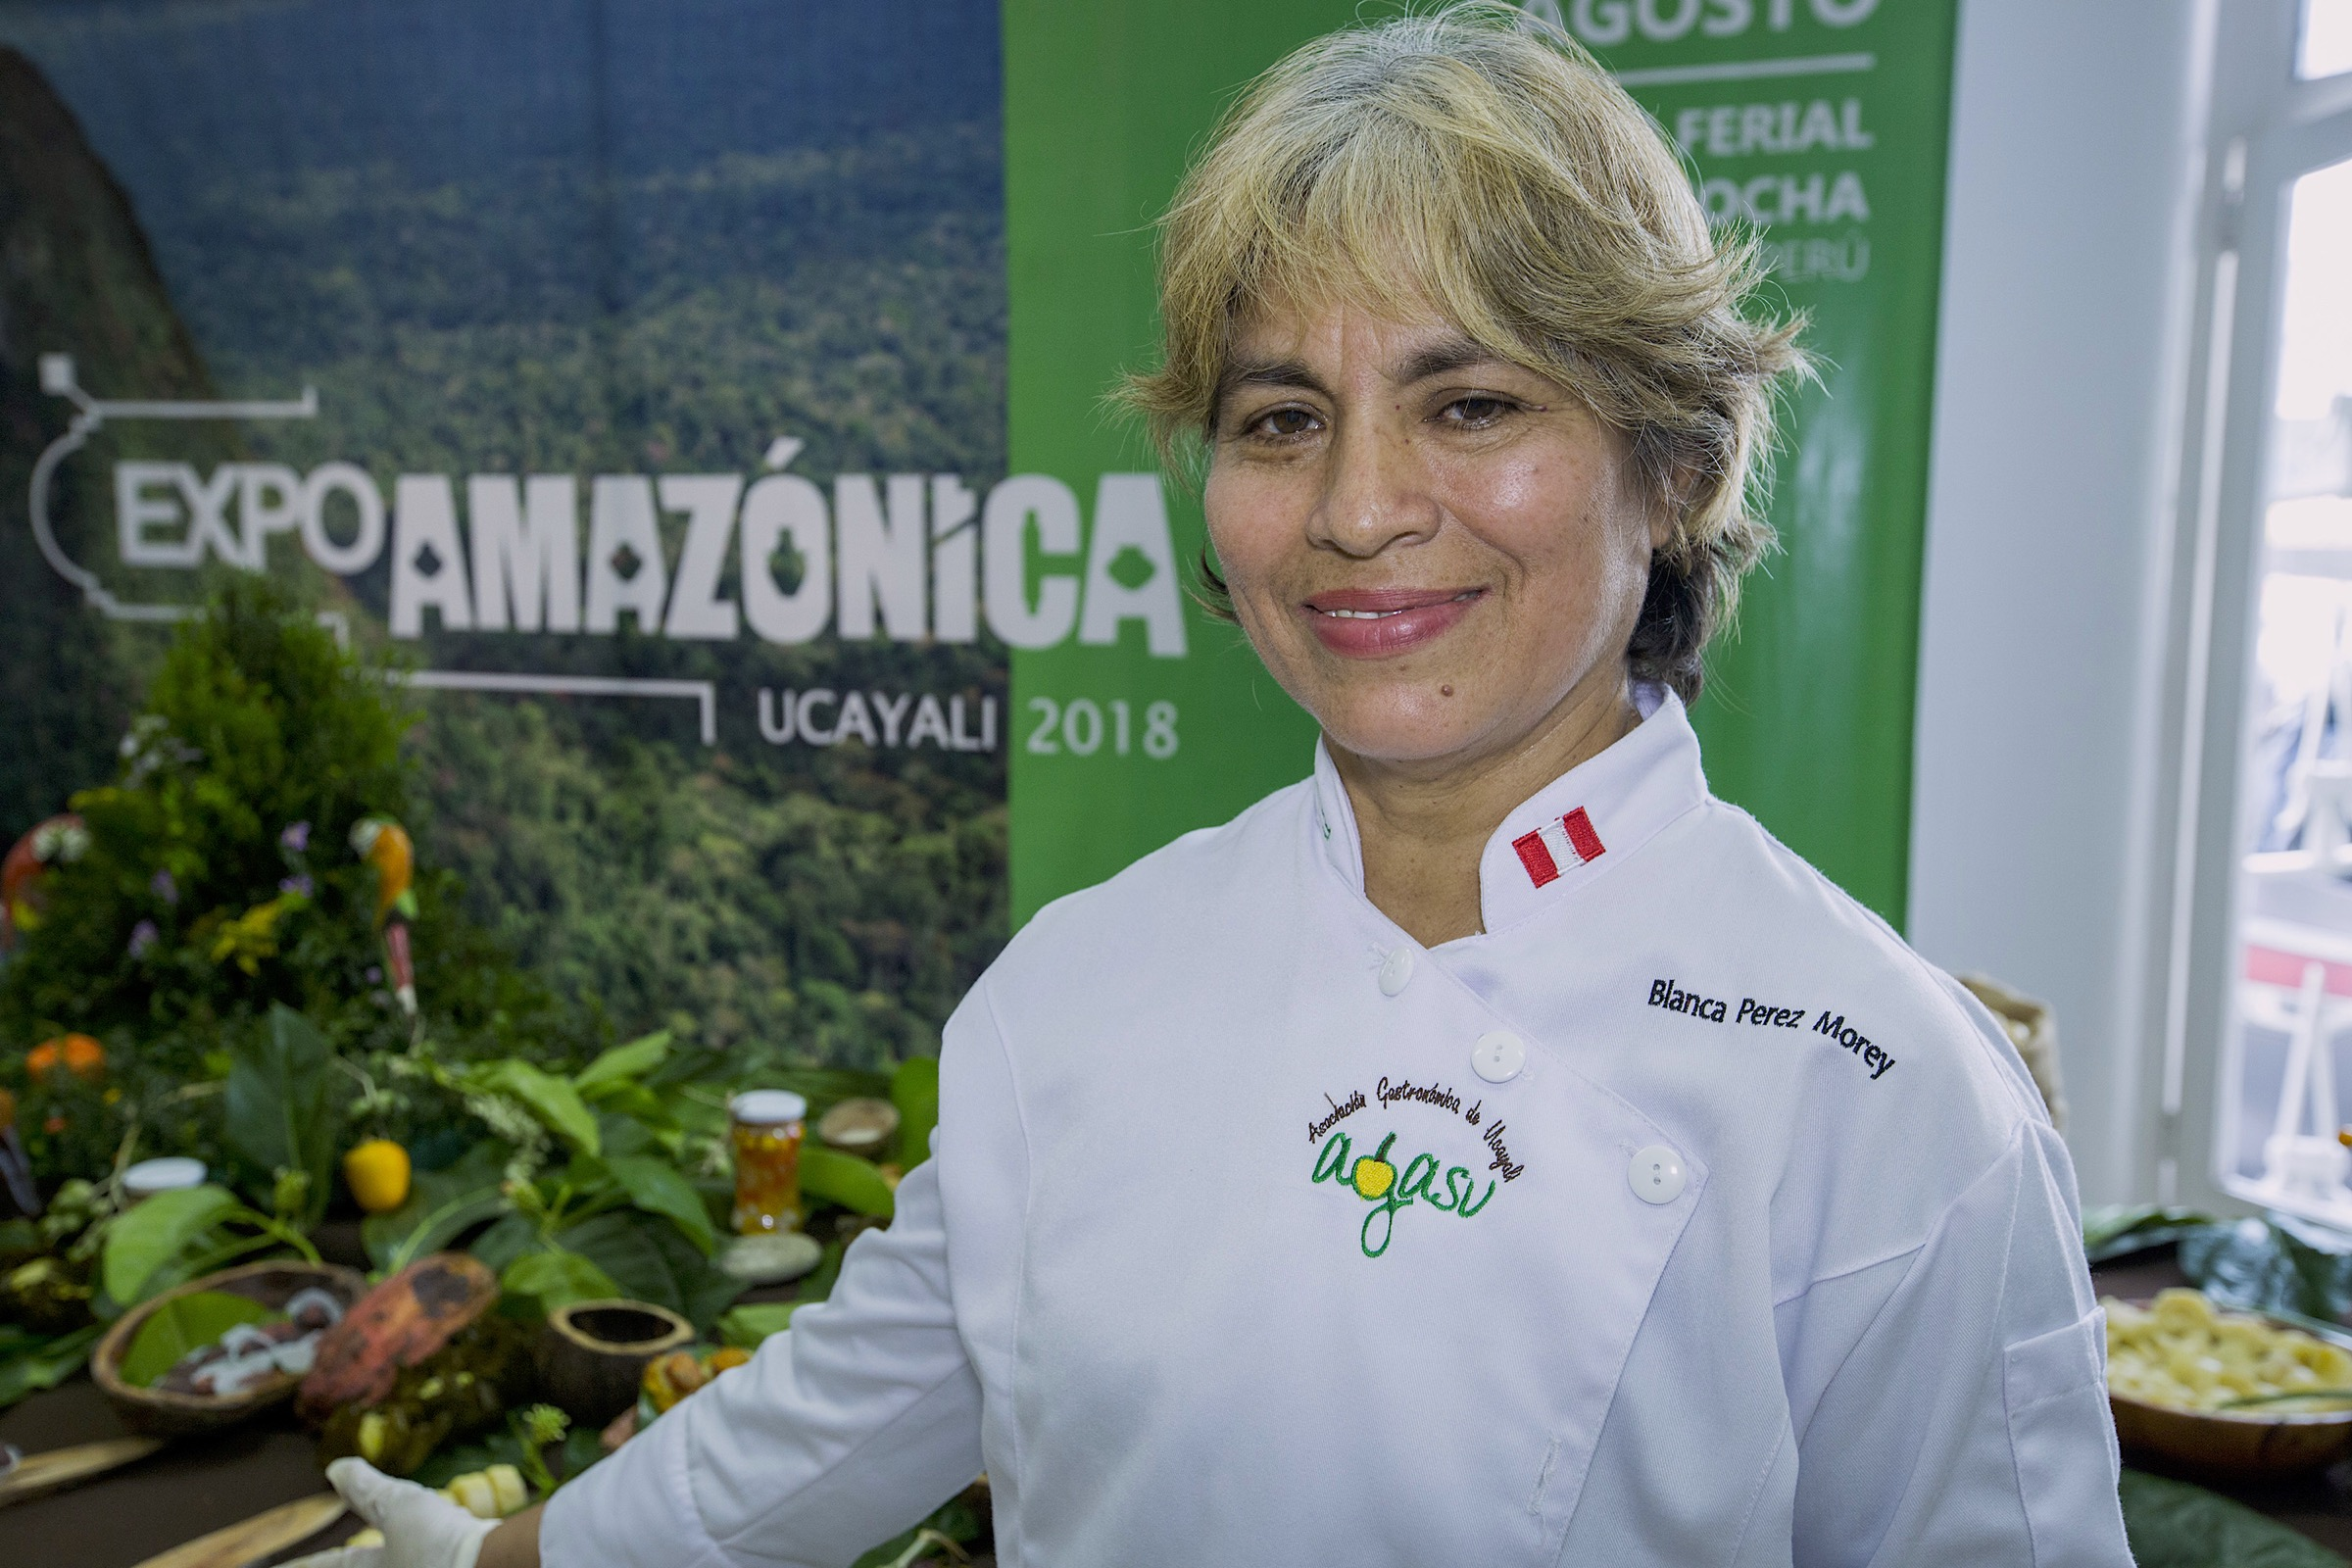 Blanca Perez Morey hopes that by cultivating a taste for wild rainforest foods, she and her organization can help protect the Amazon.